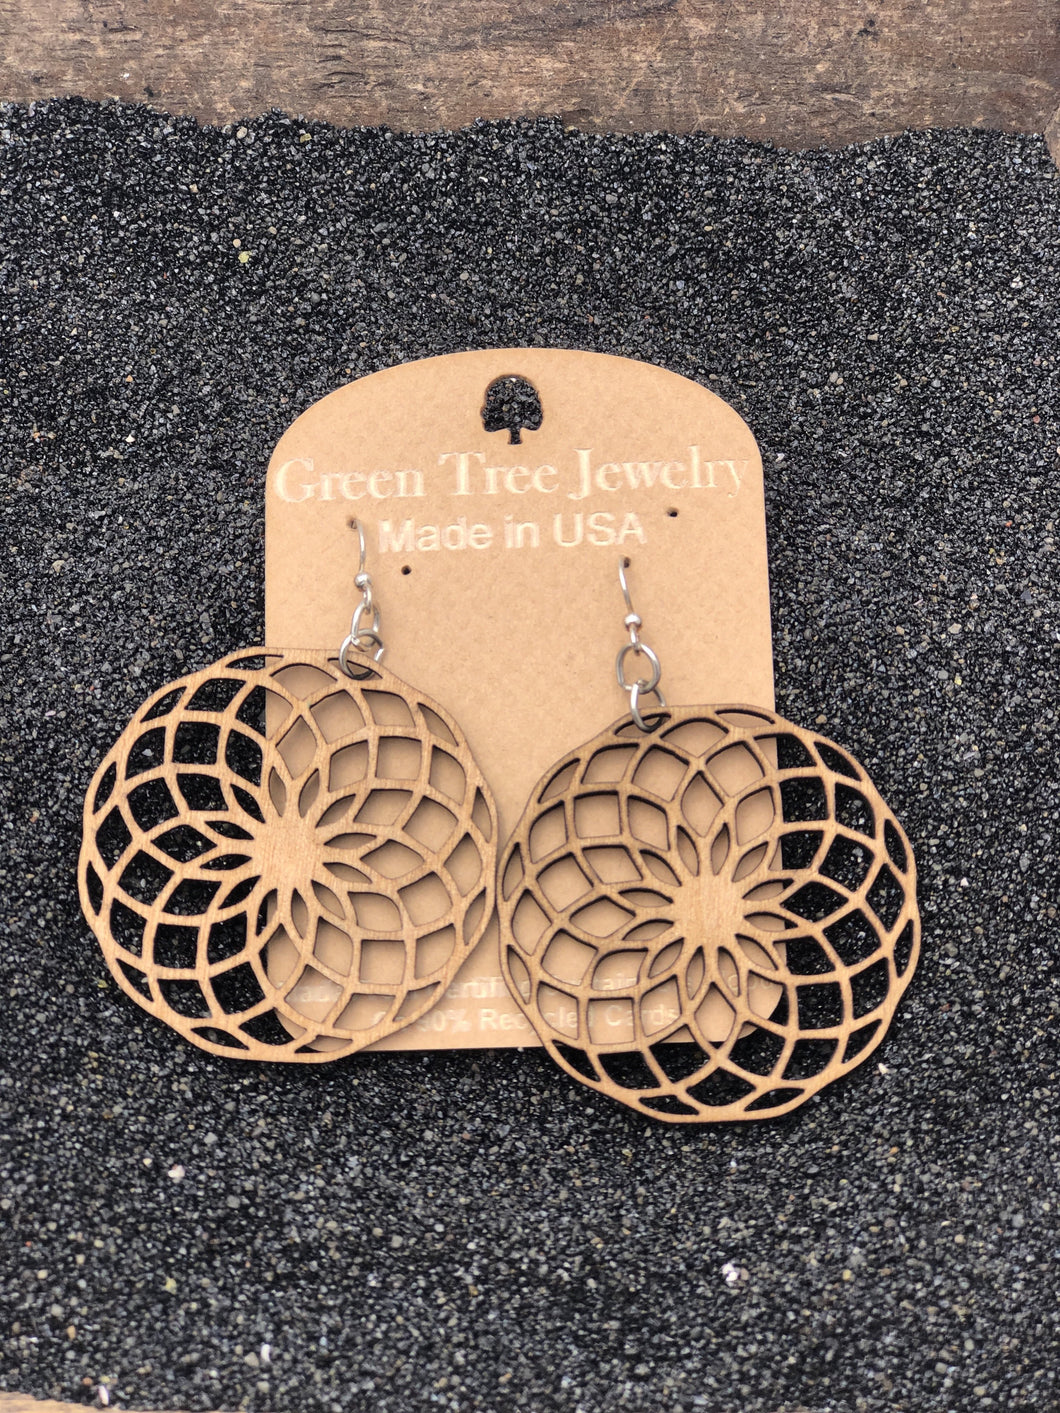 Circumscribe Circle Wooden Earrings